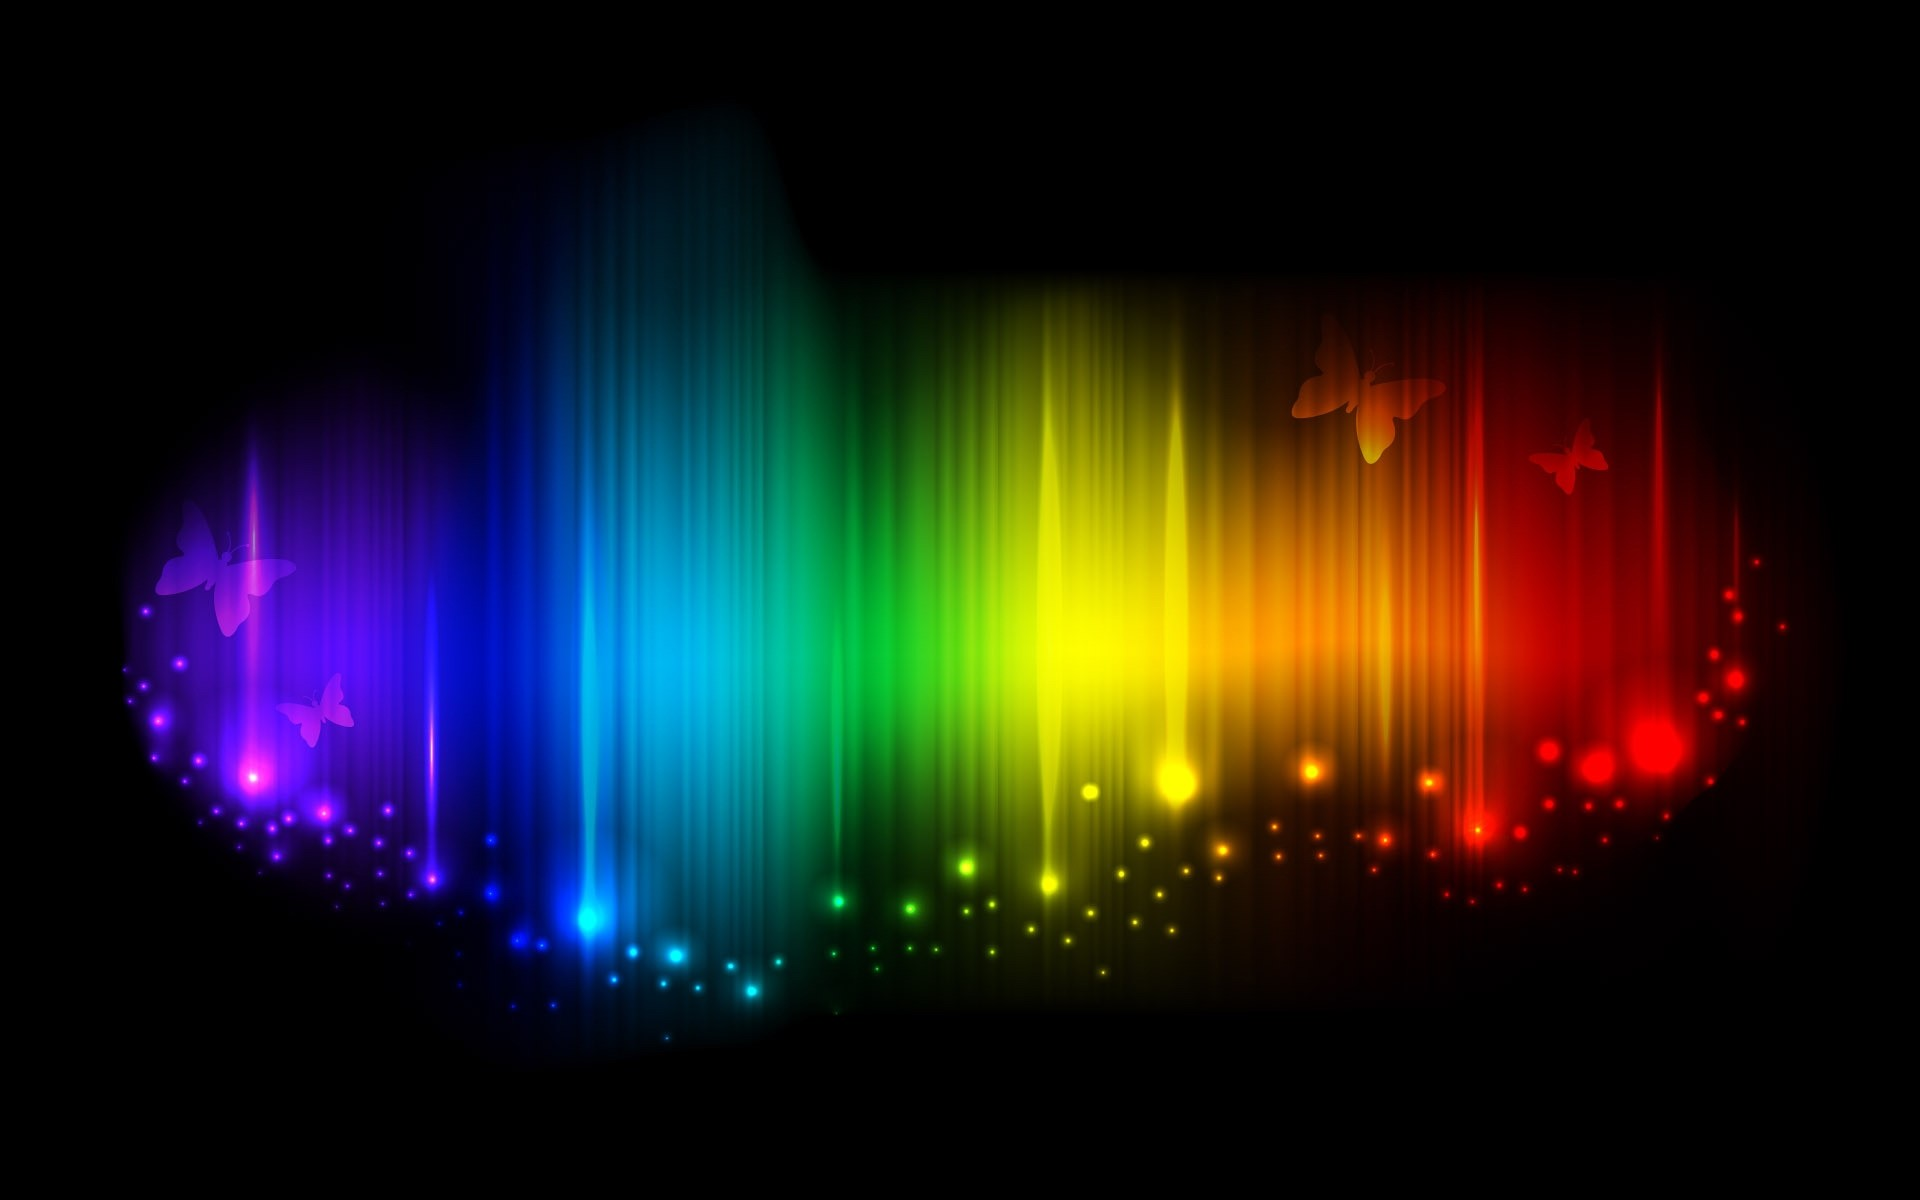 Colorful Abstract Art Wallpaper